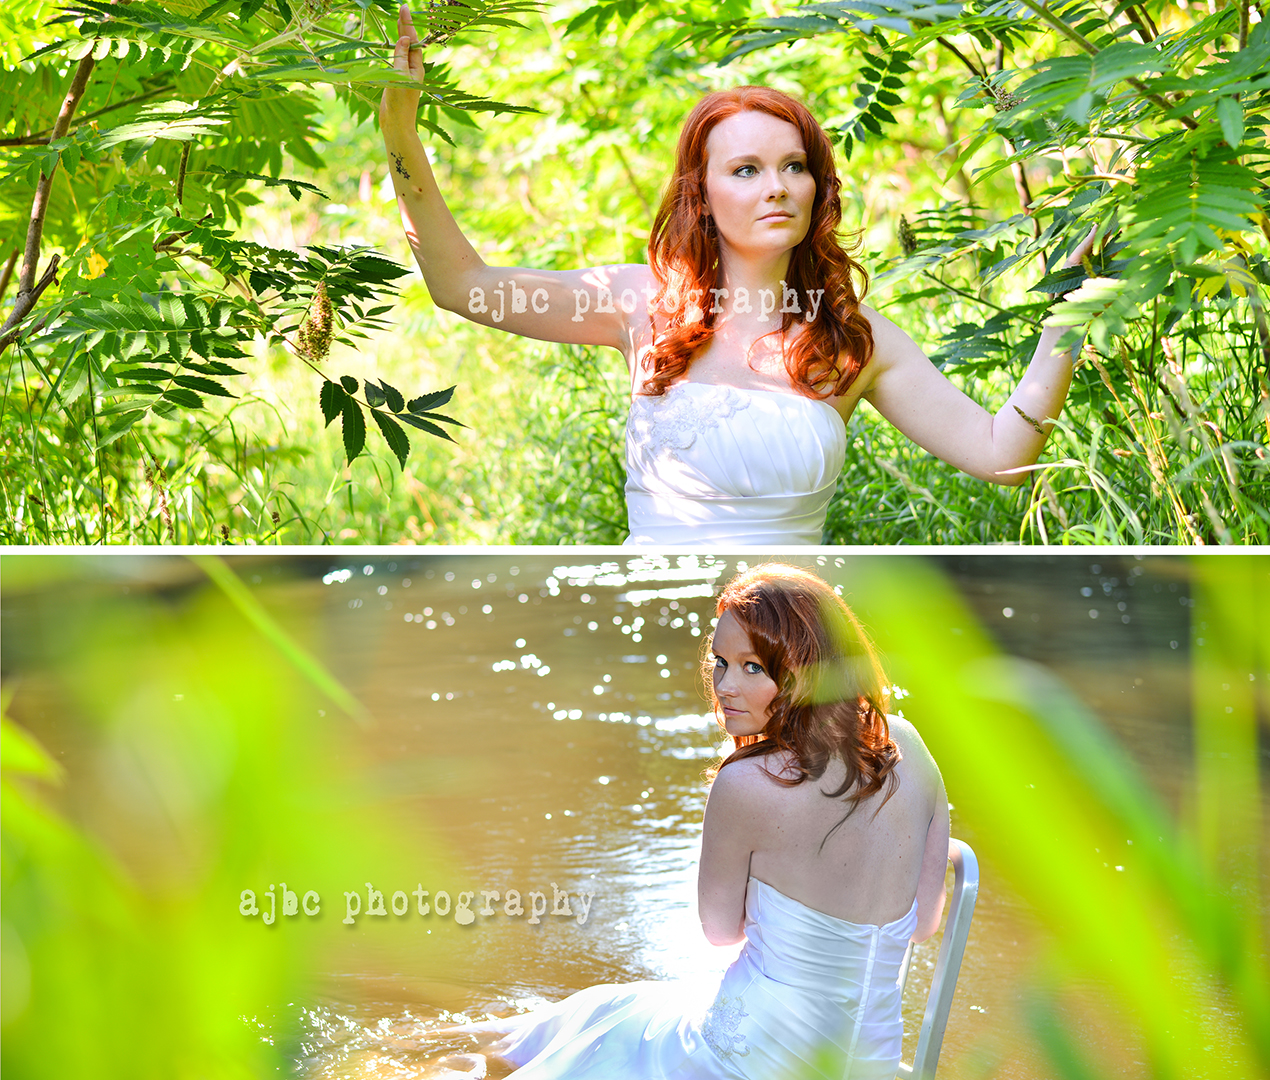 AJBCPhotography trash the dress bride wedding port huron photographer boudoir michigan